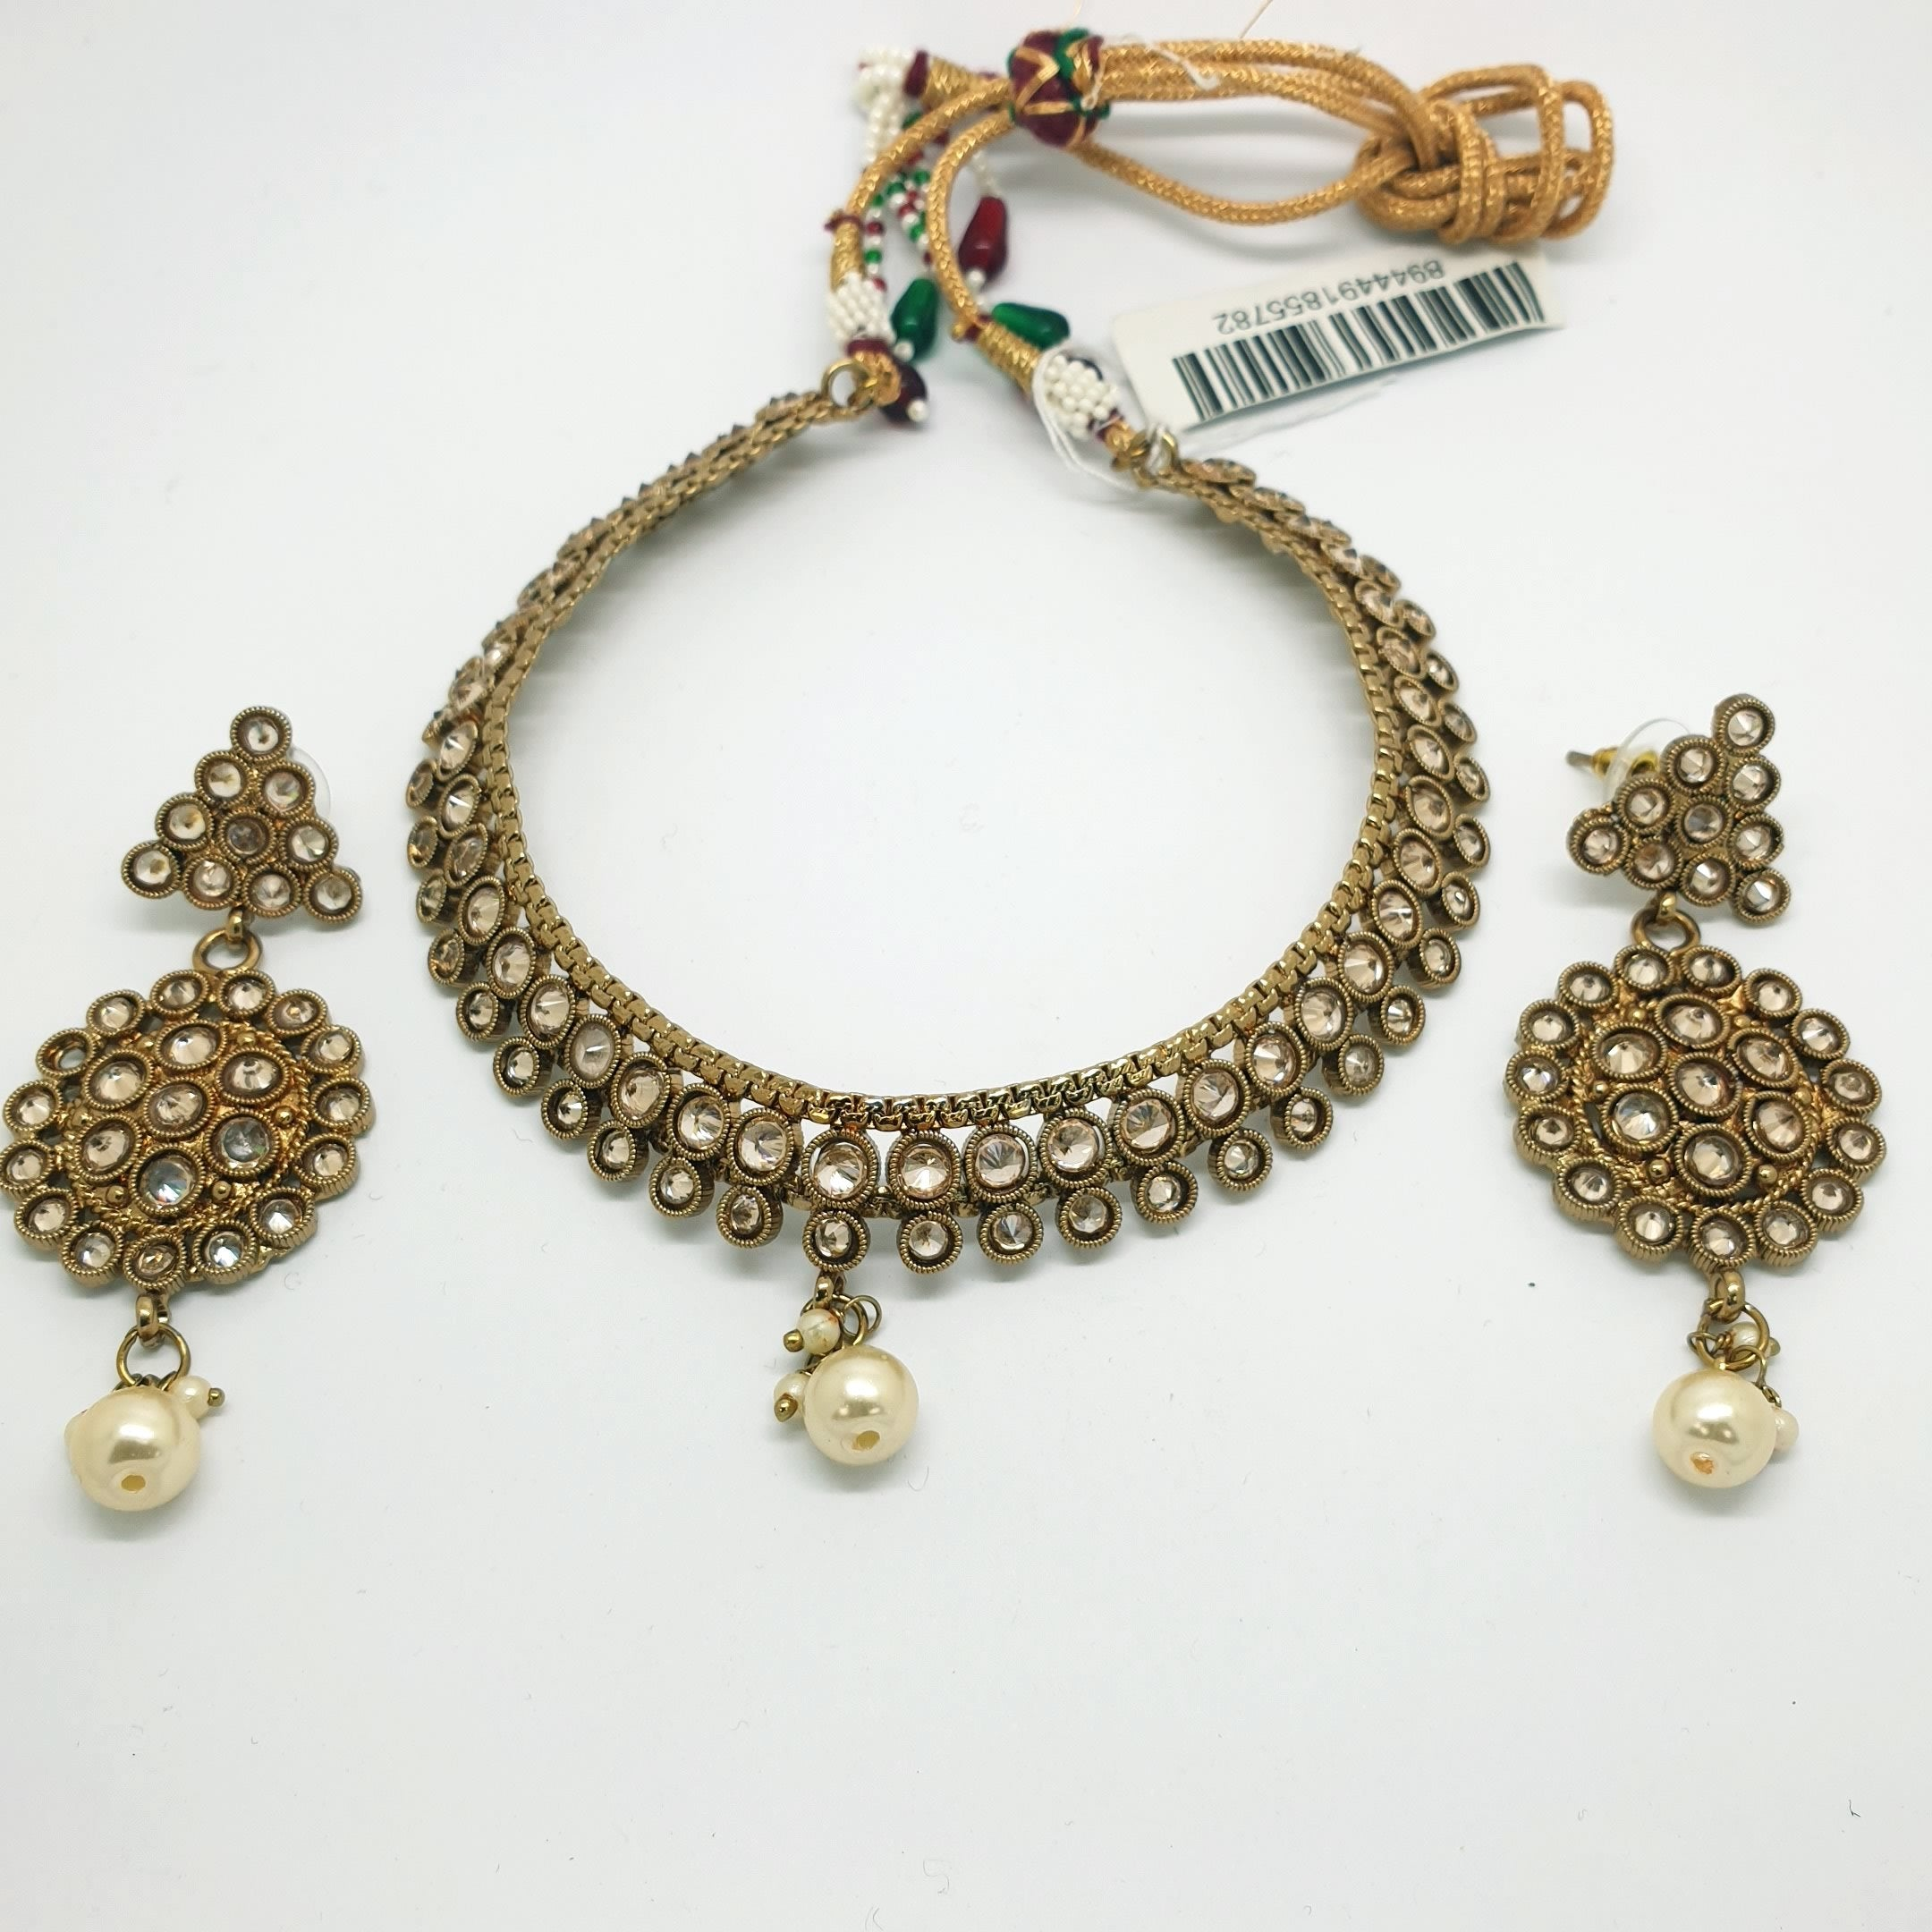 Reverse stone Choker necklace set - Bollywood - Weddings - MNA213 KJ0719